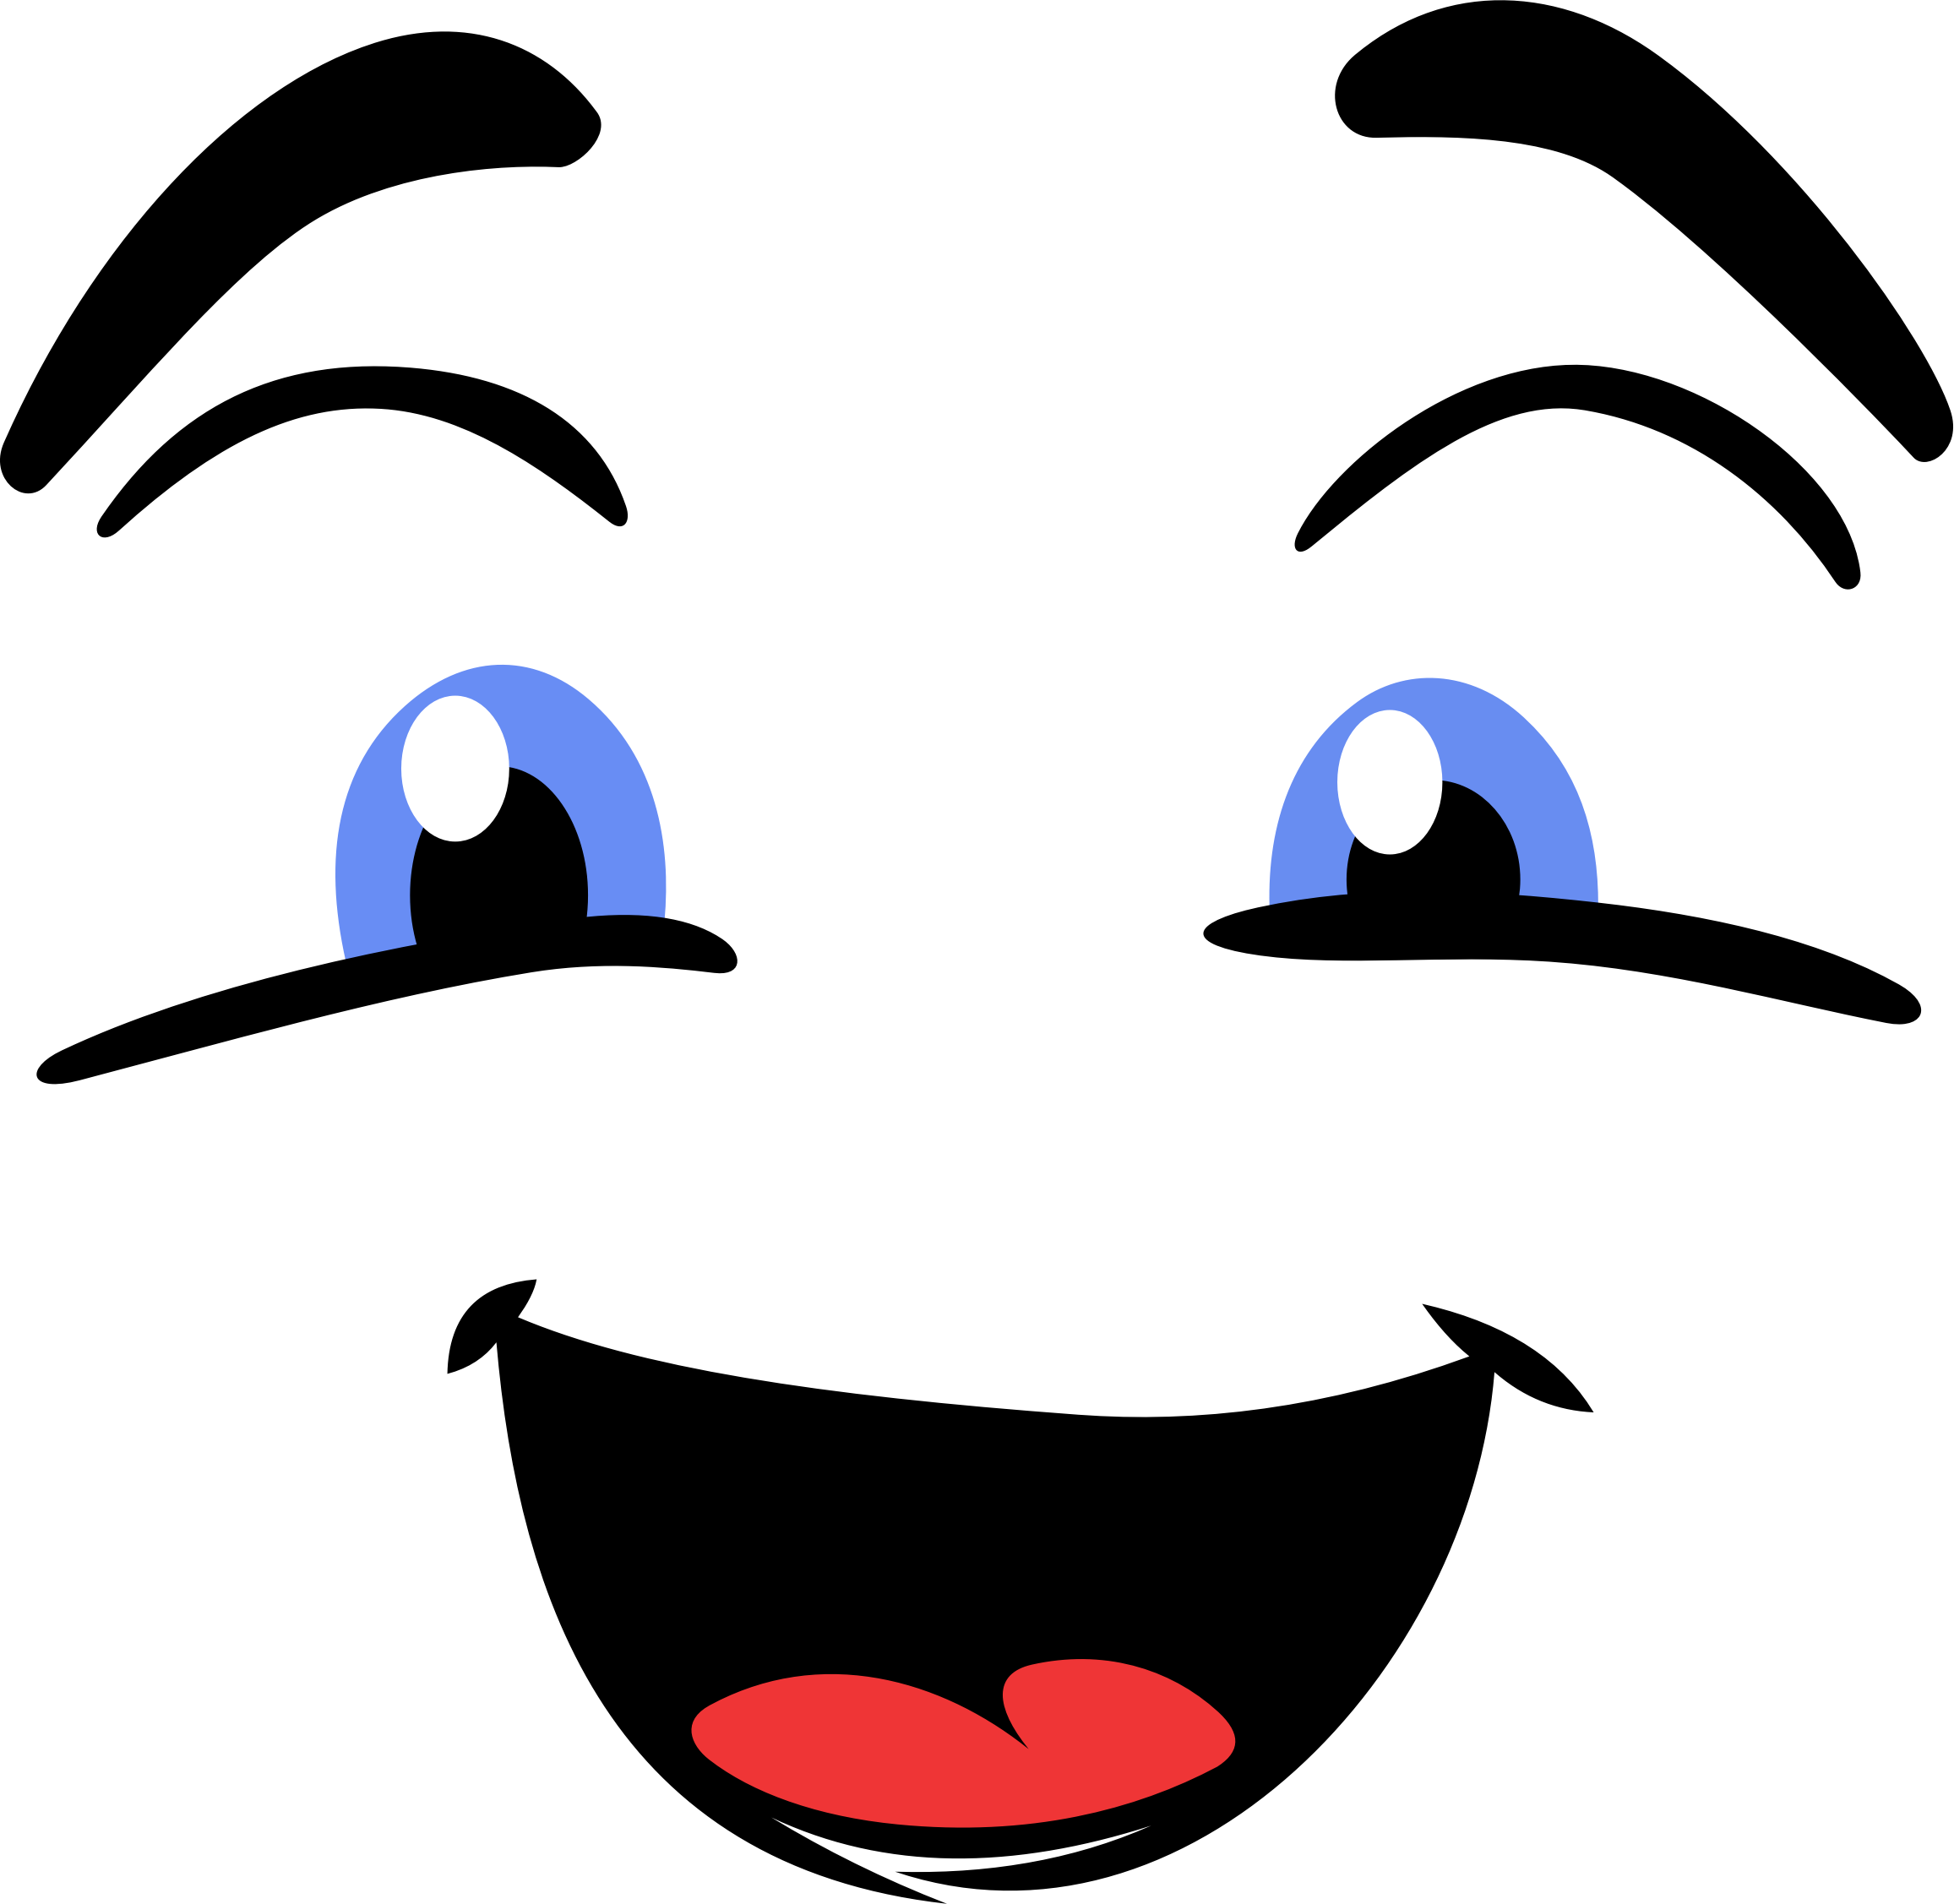 Large Happy Face Vector Clipart image.